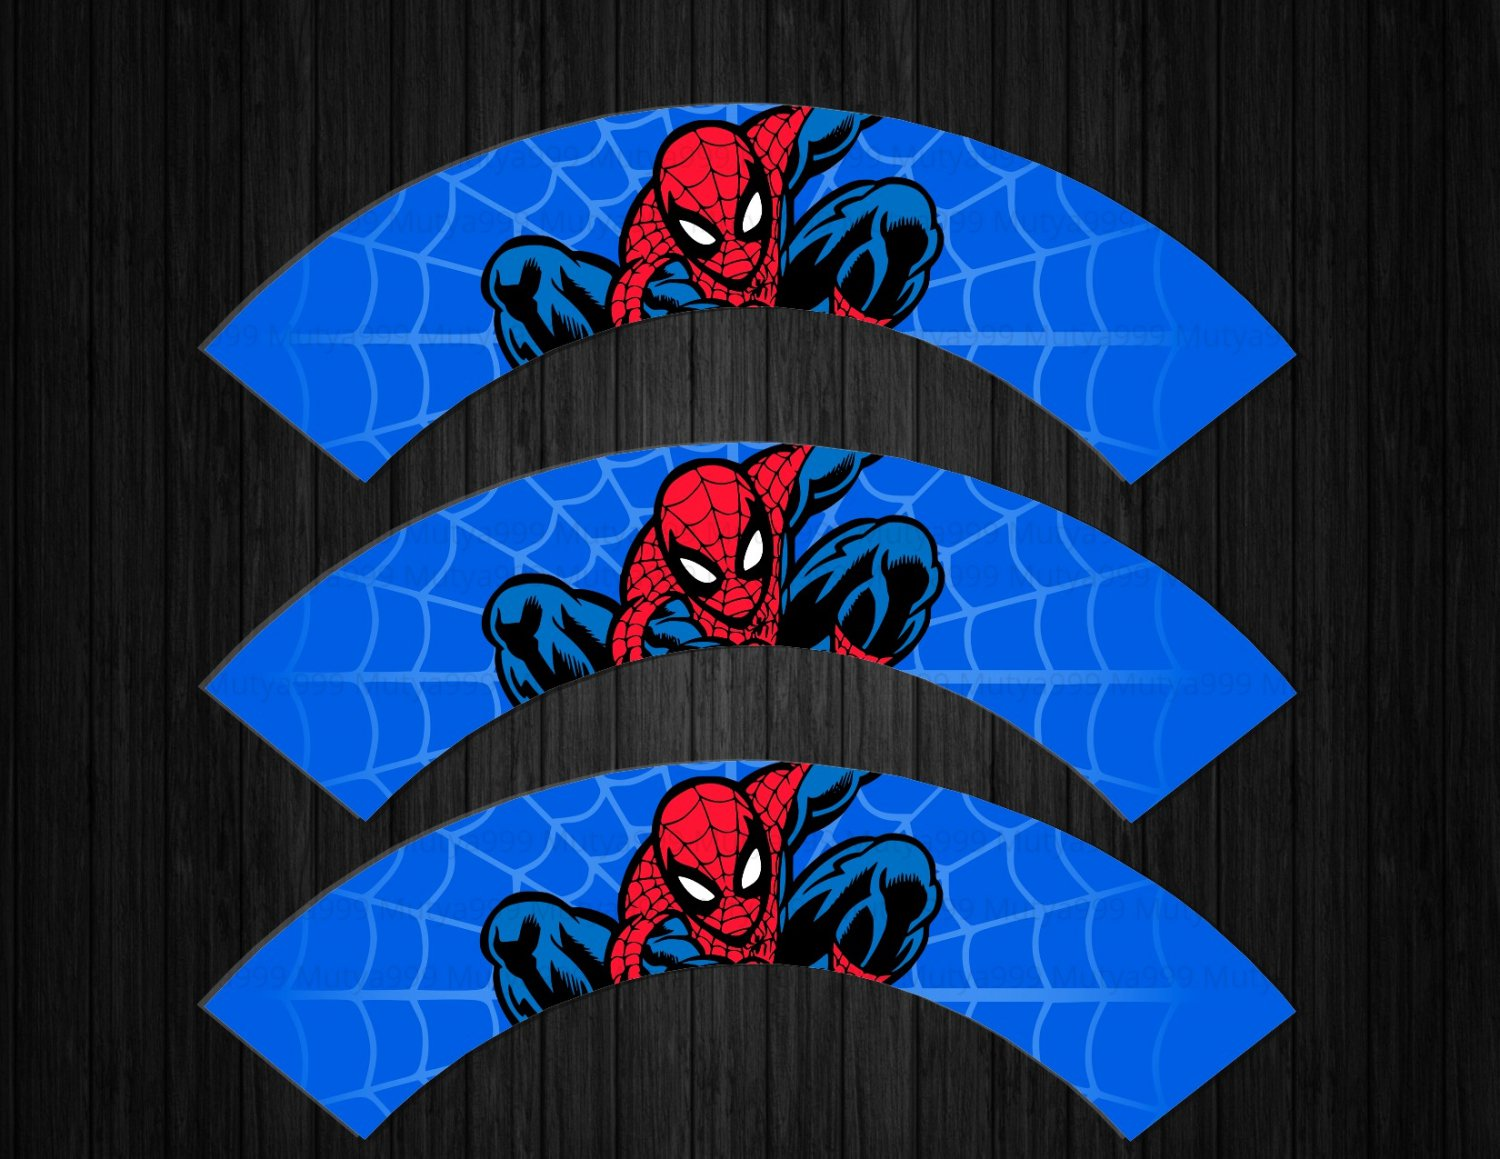 Spiderman Avengers BLUE Cupcake Wrappers Printable Digital Instant Download